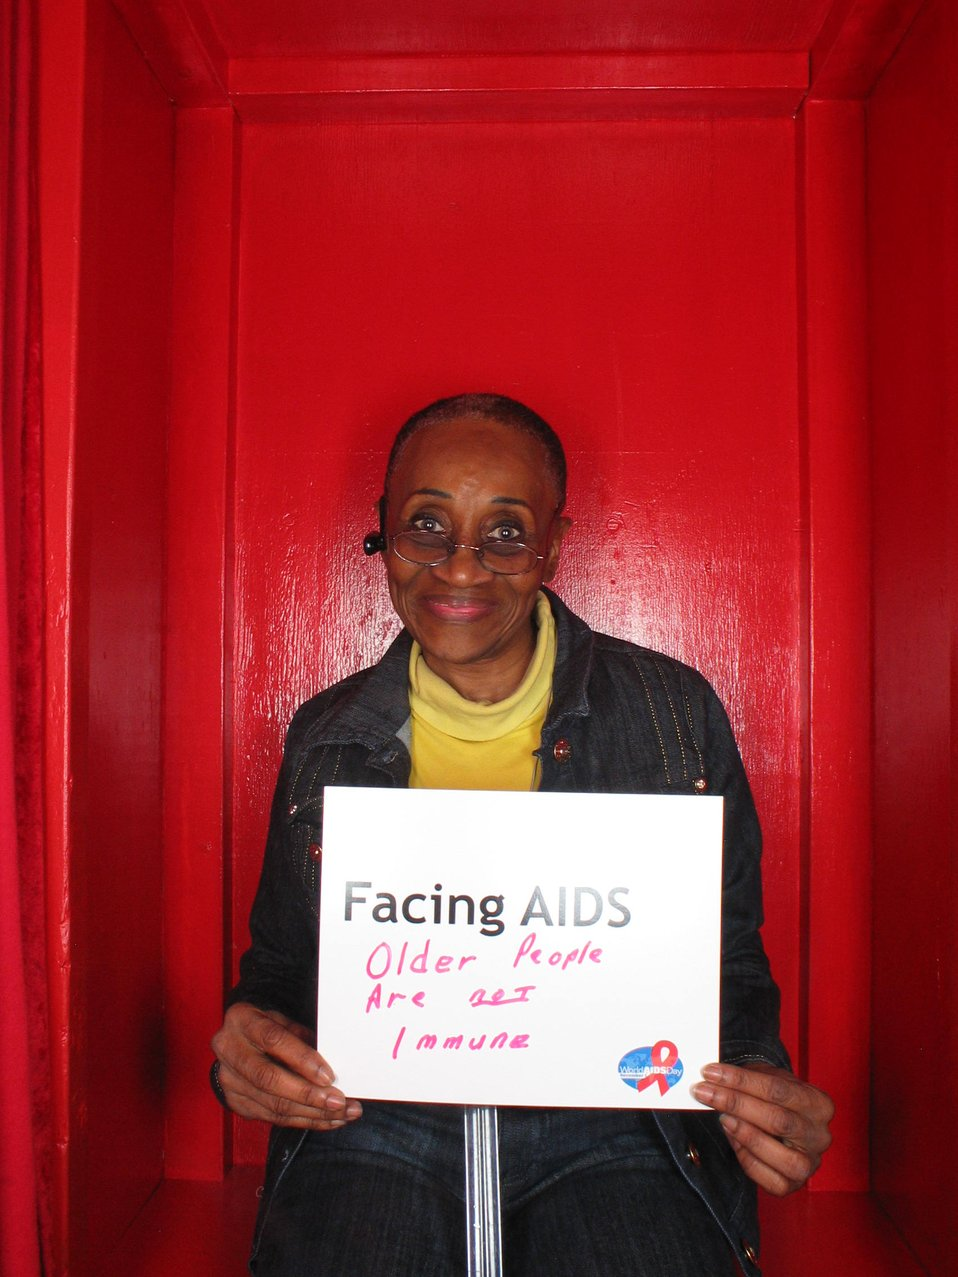 Facing AIDS older people are not immune